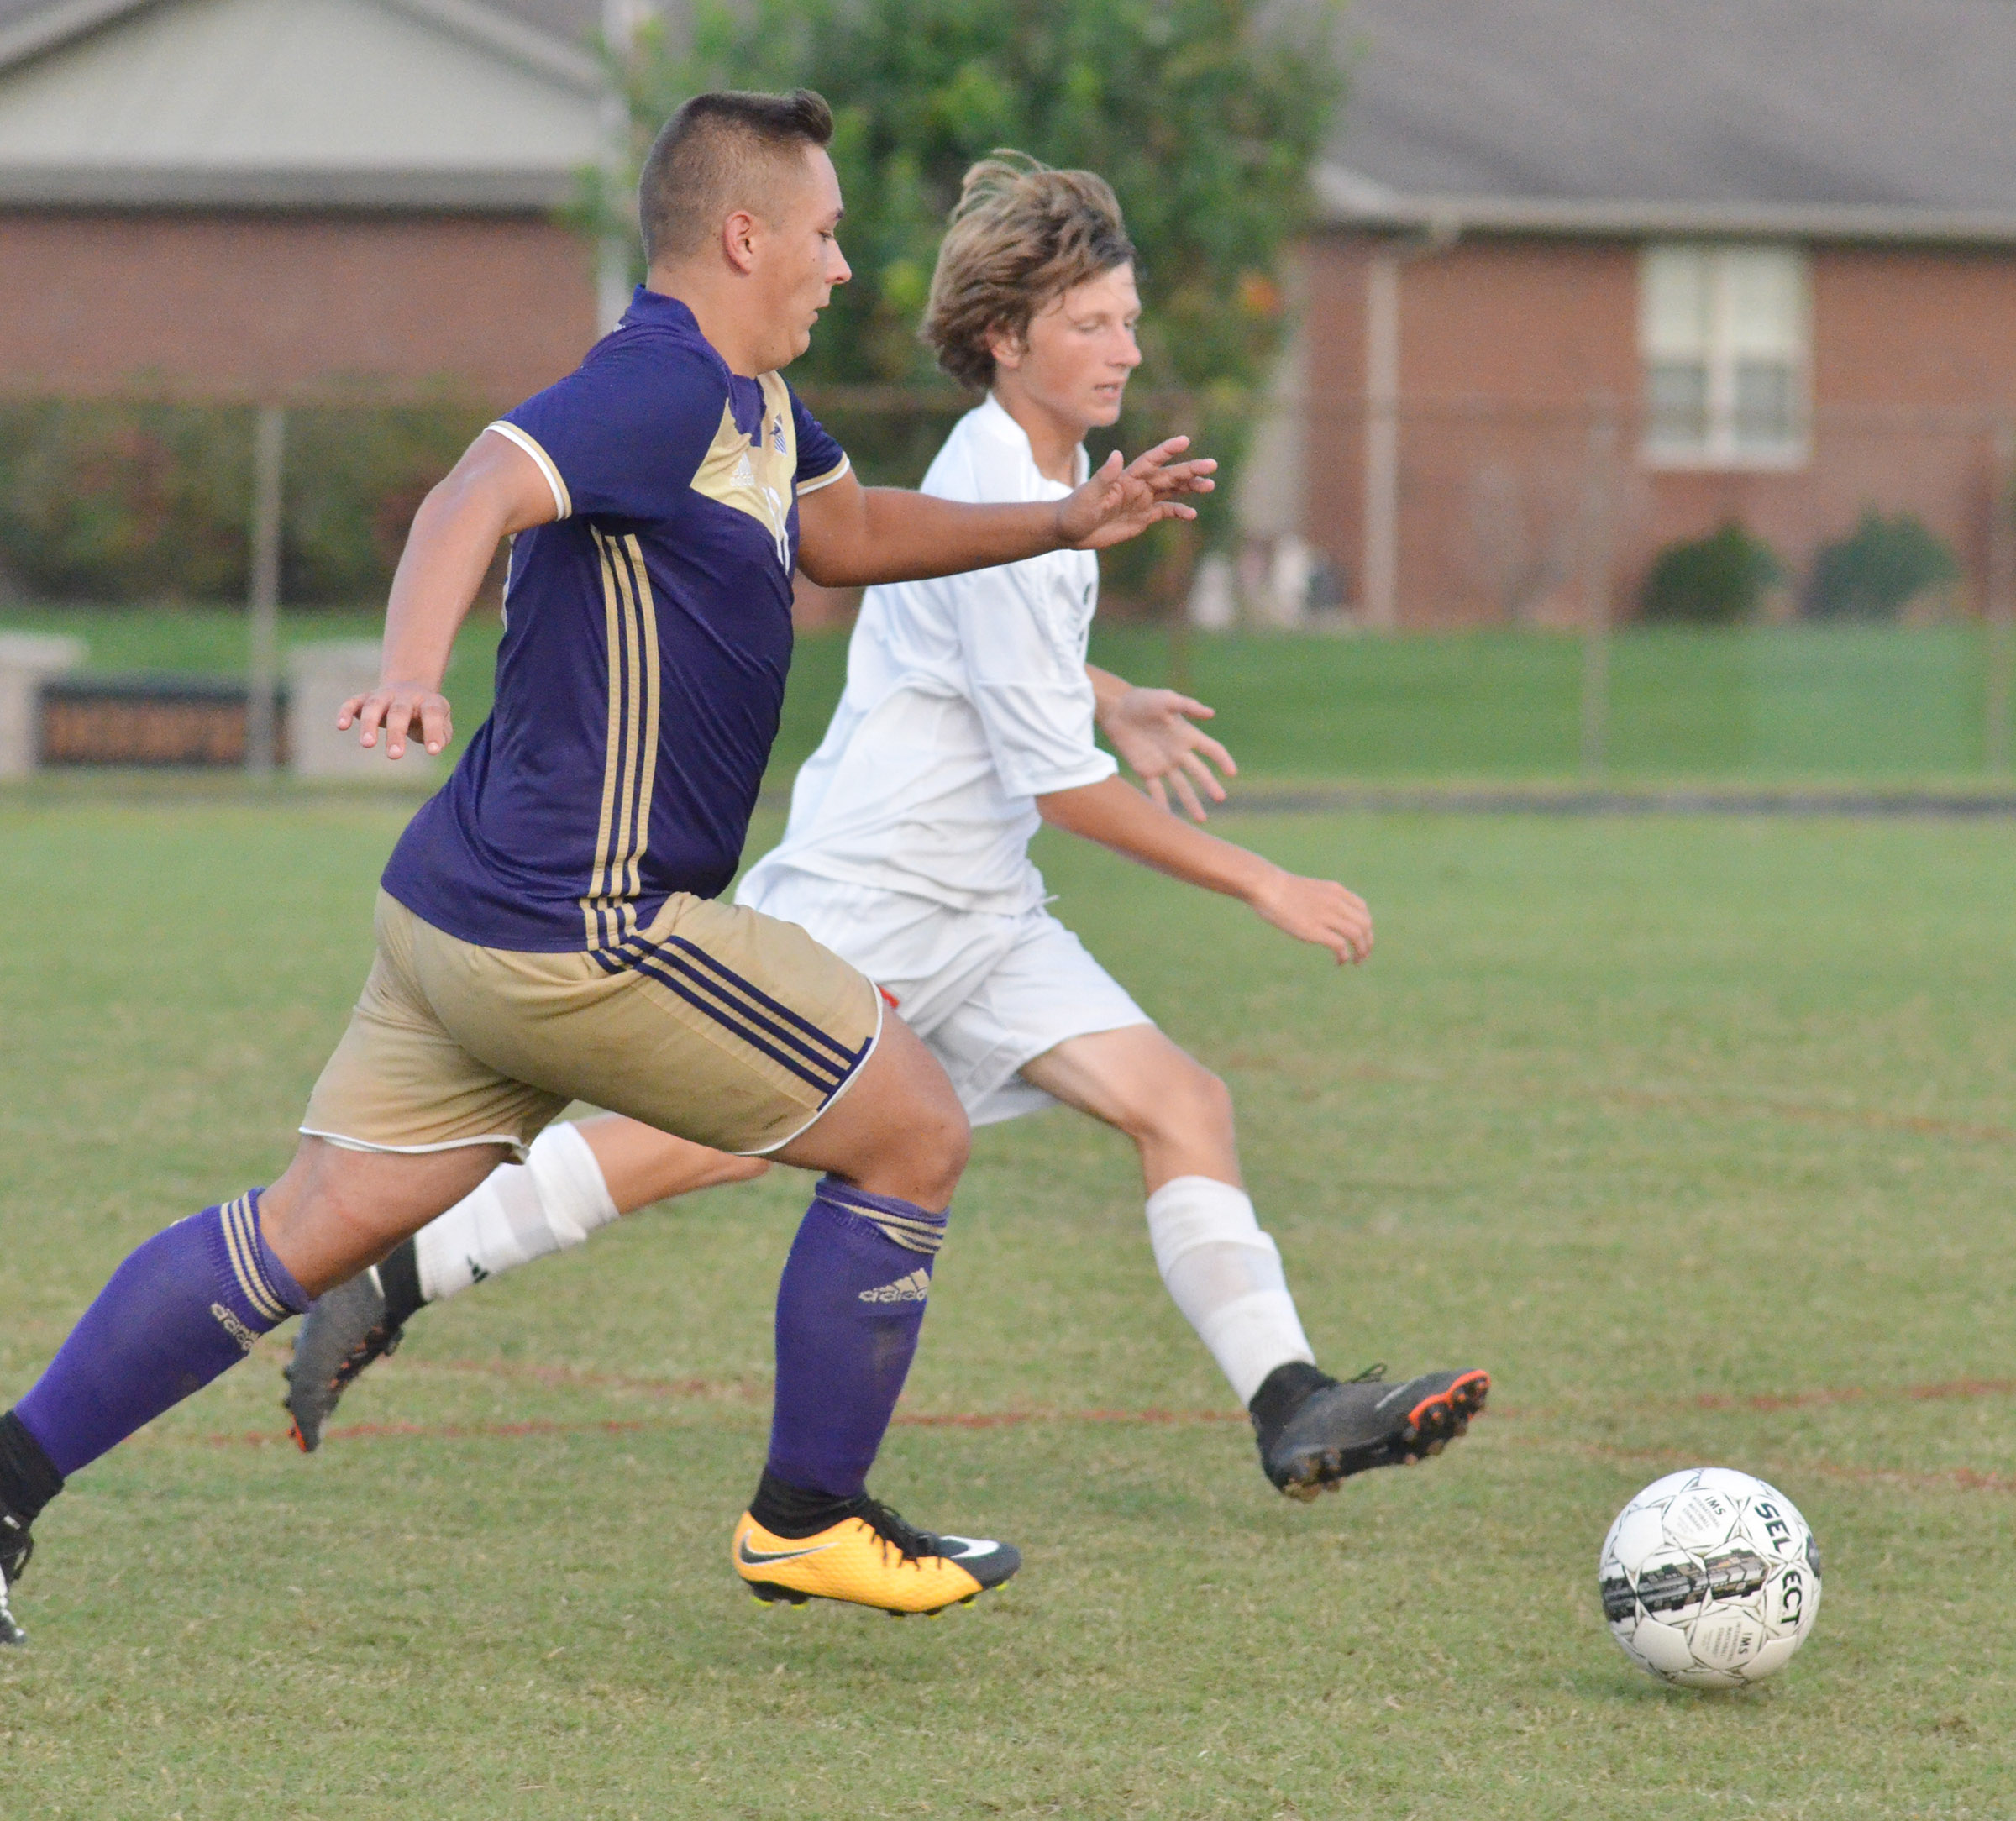 CHS senior Cody Davis kicks the ball.